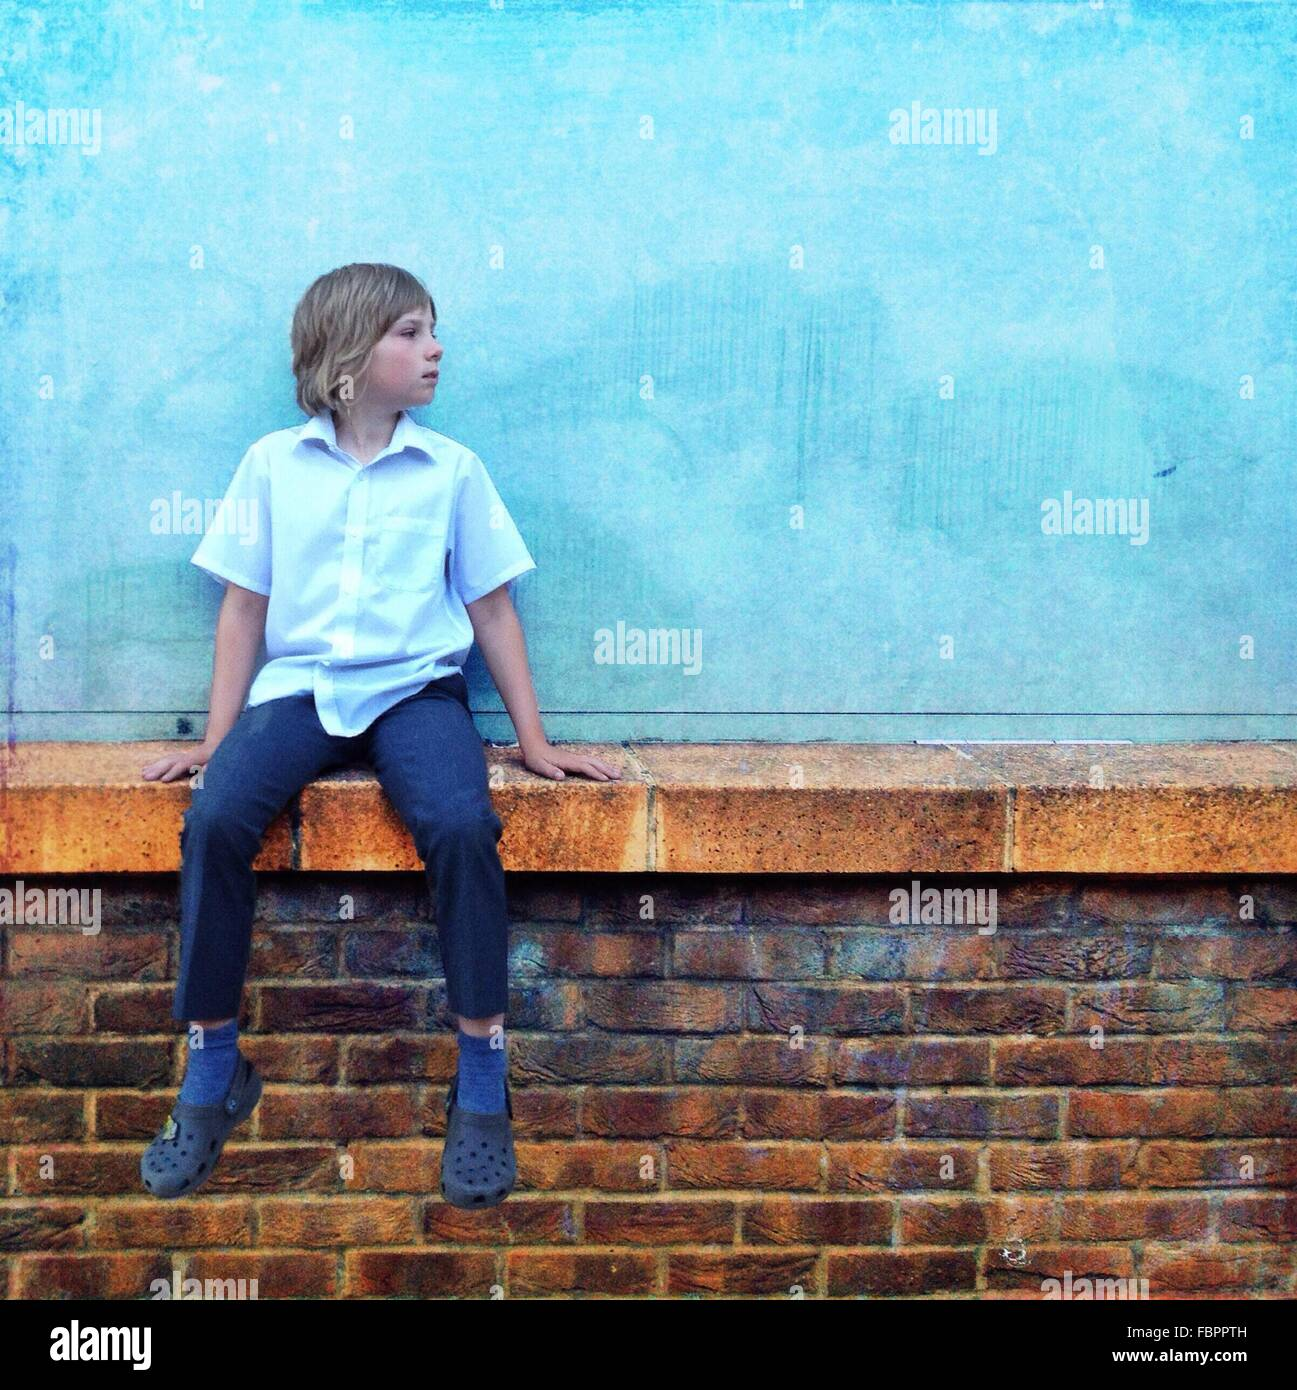 Teenage Boy Wearing Blue Shirt And Jeans Sitting On Wall - Stock Image